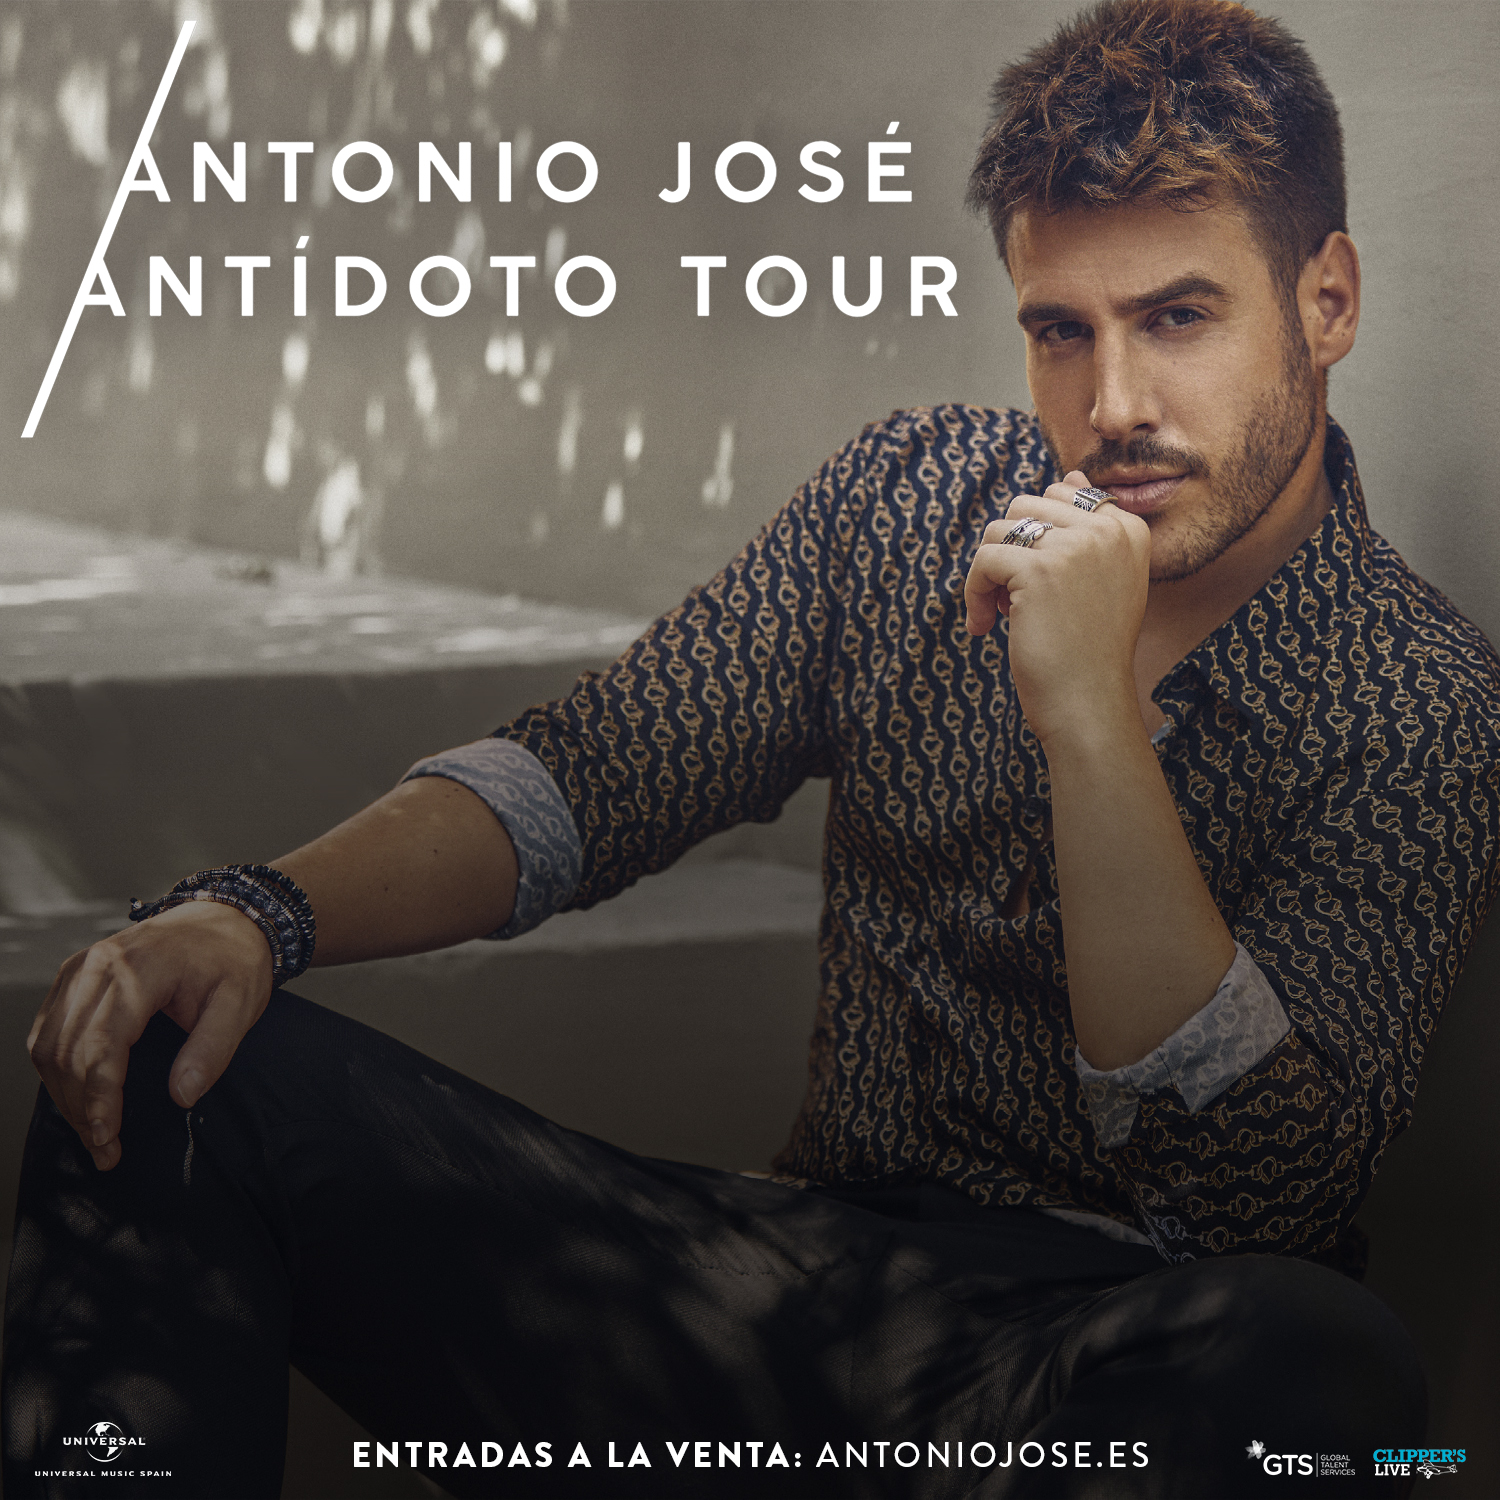 antonio-jose-antidoto-tour-5dd6c07db92c0.jpeg